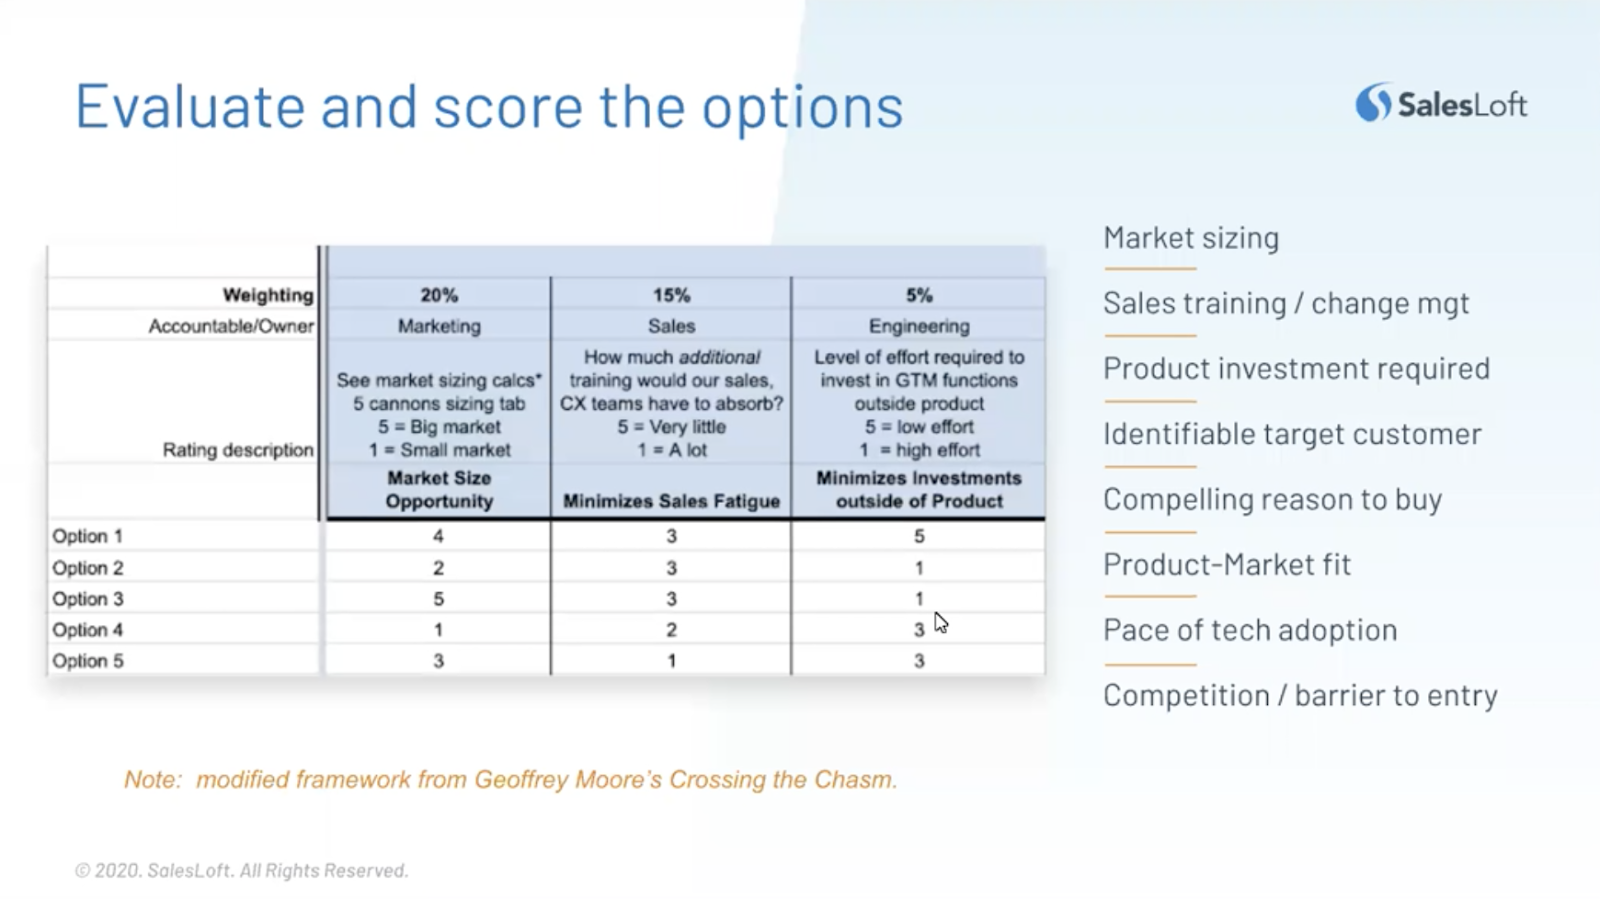 Evaluate and score the options within the market.